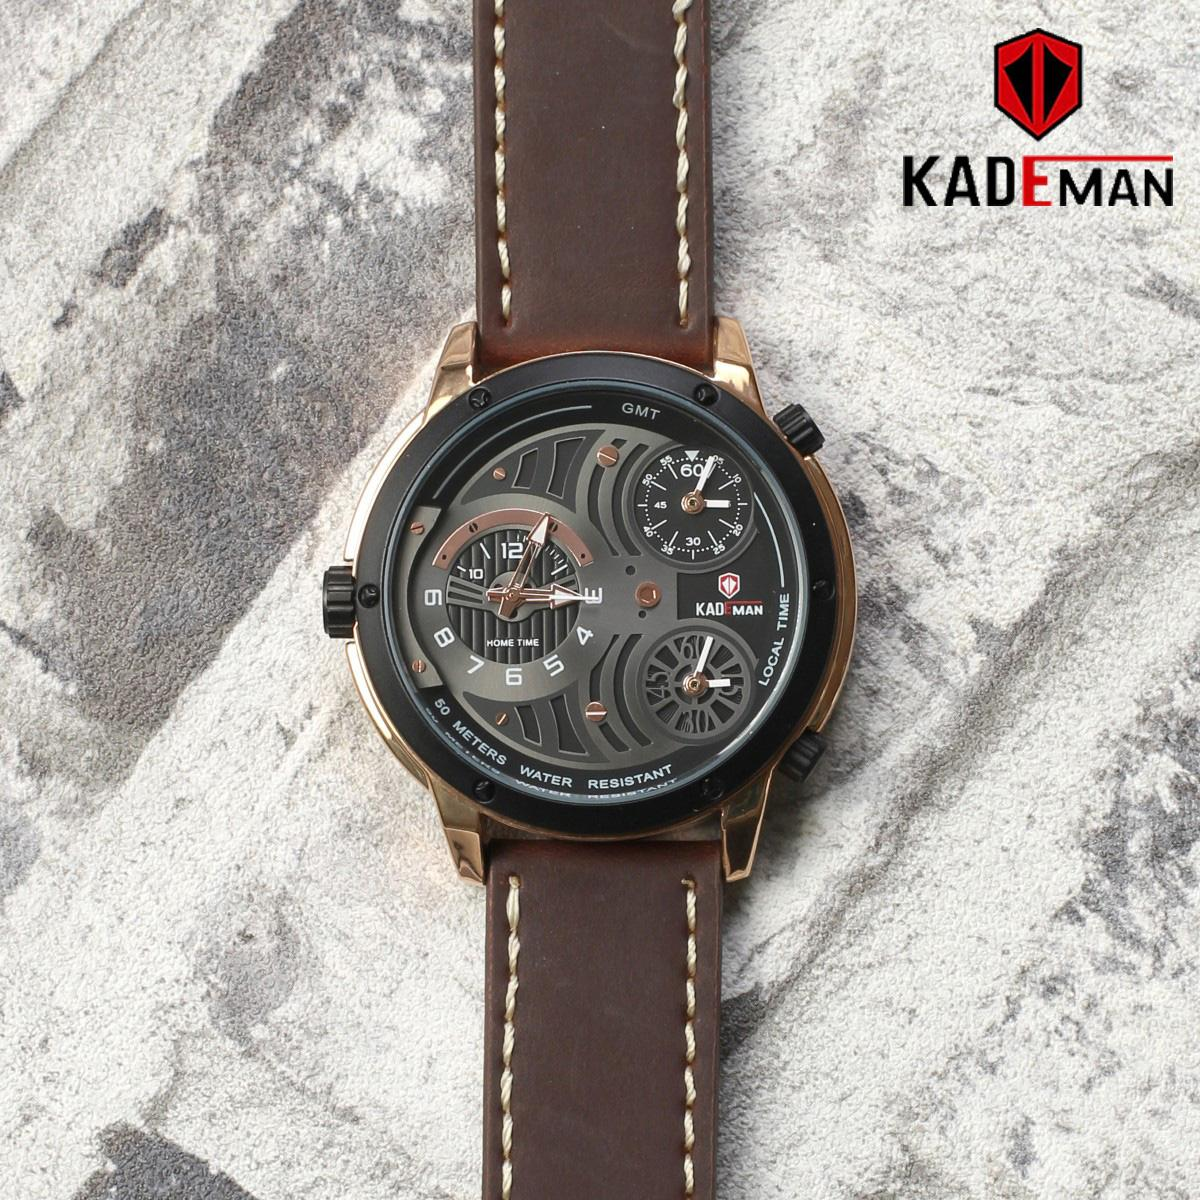 7665c5fe1cb Mens Watches Price in Nepal - Buy Hand Watches For Men Online ...